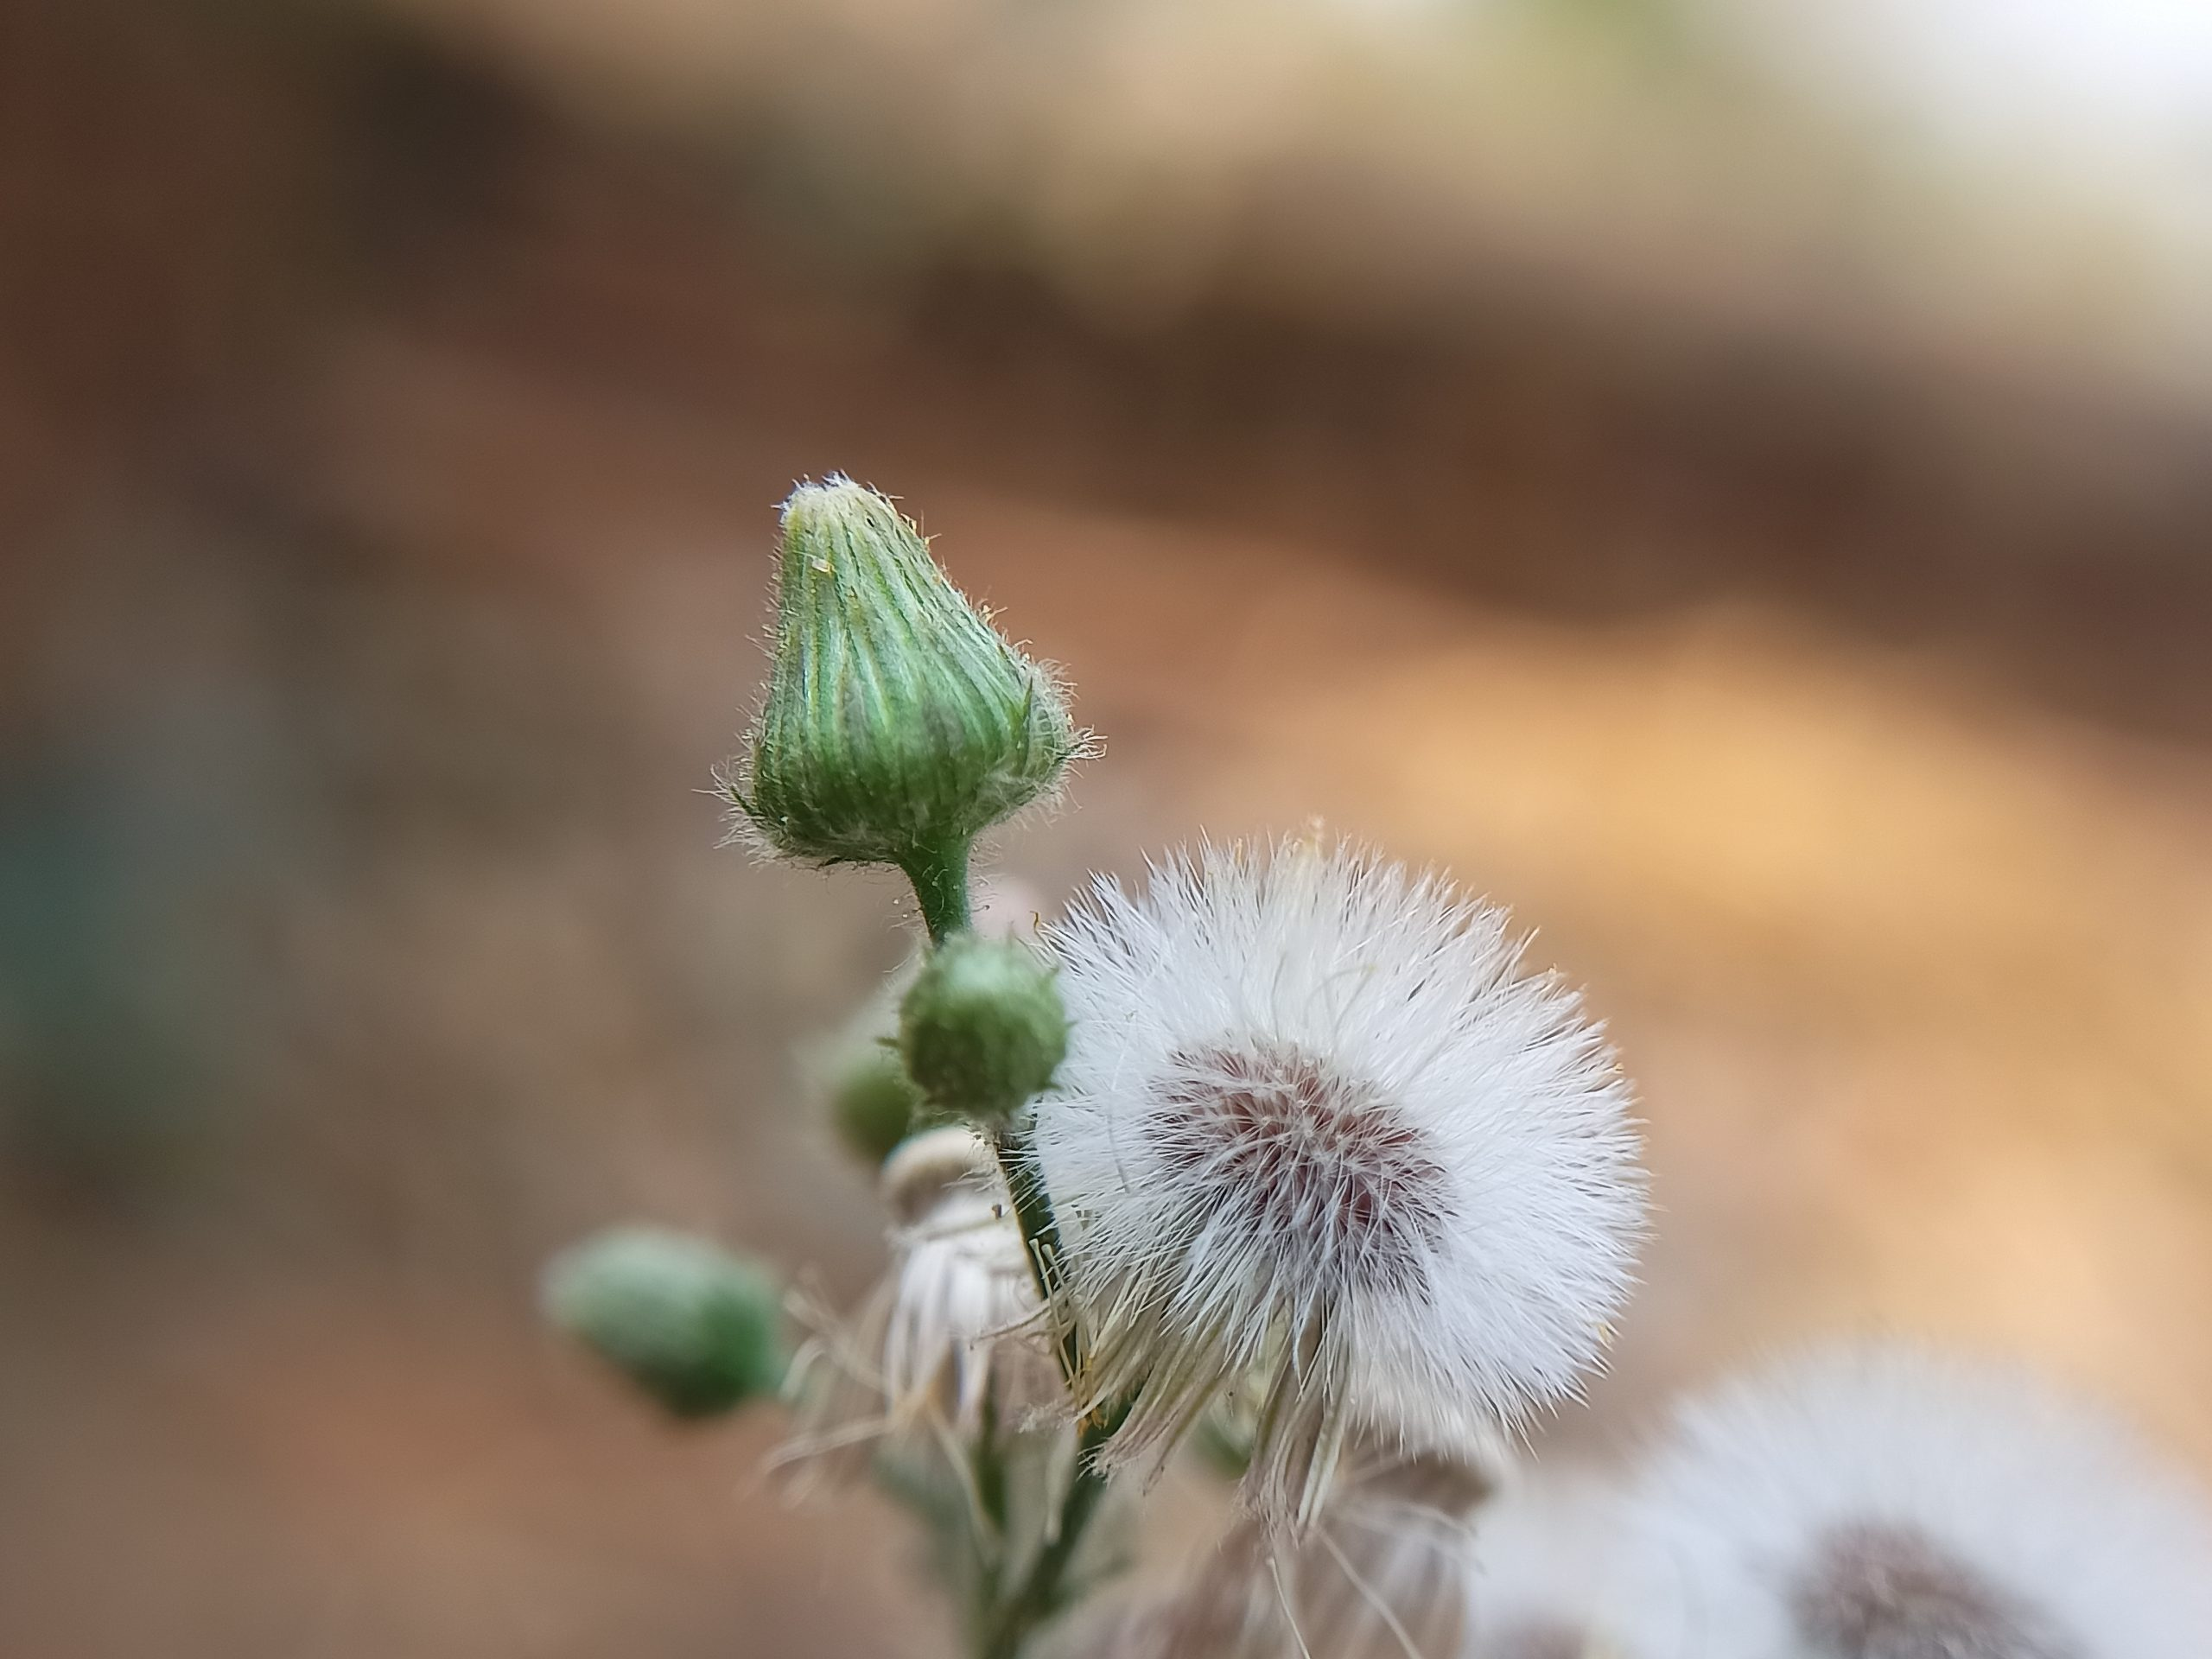 Blooming bud of dandelion